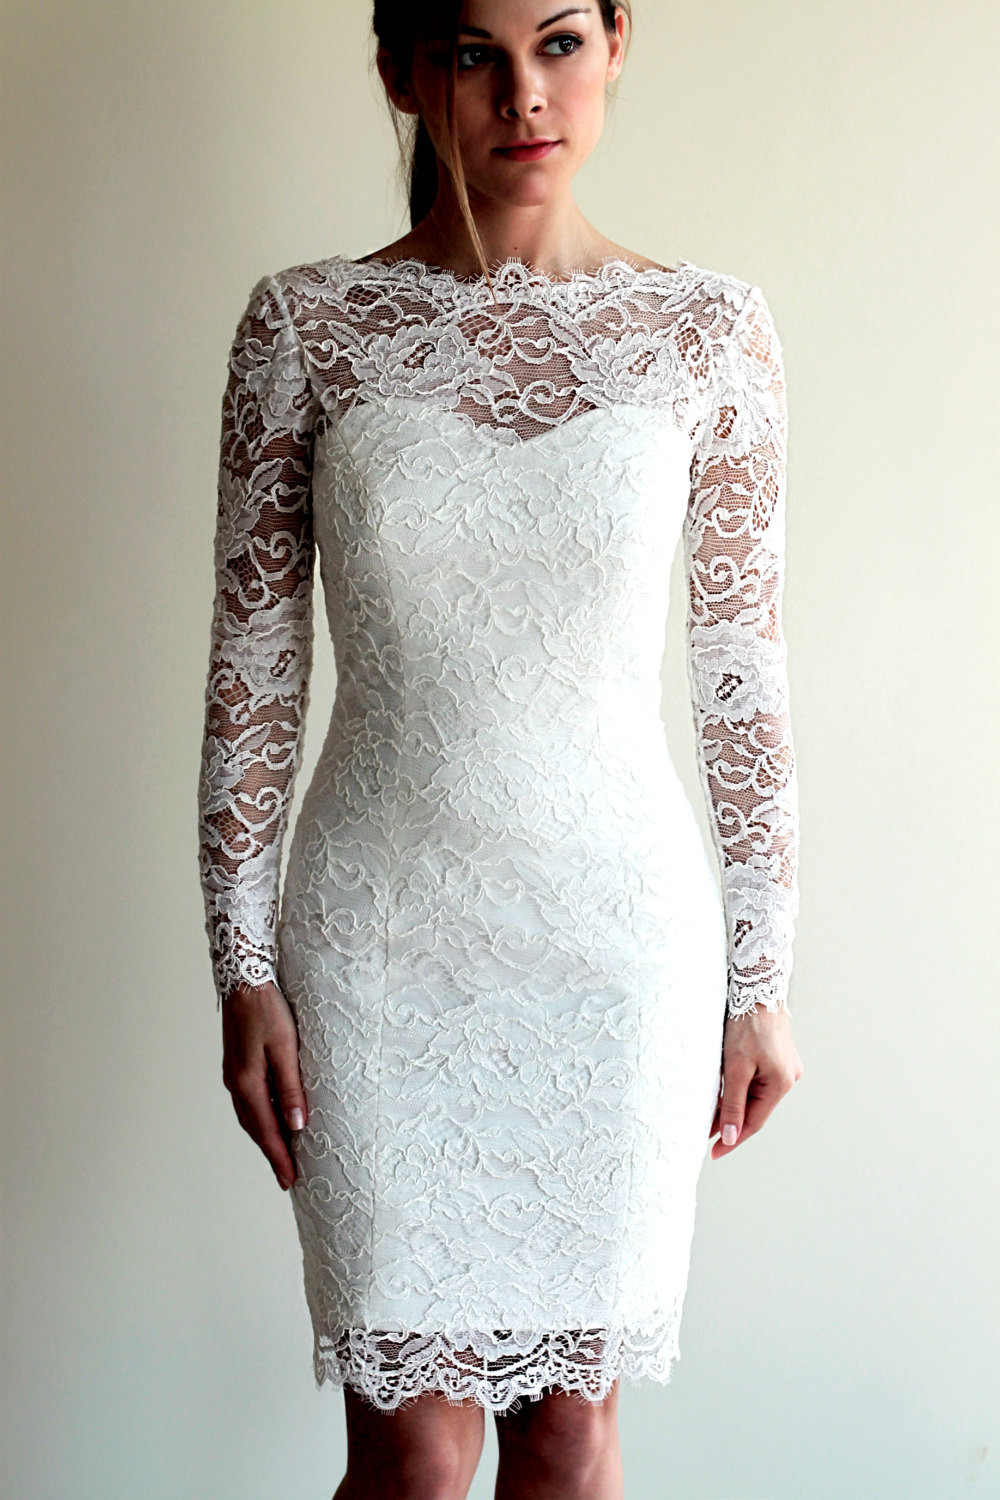 Wedding Dress Patterns New Crochet Wedding Dress Patterns Free Of Incredible 44 Images Wedding Dress Patterns